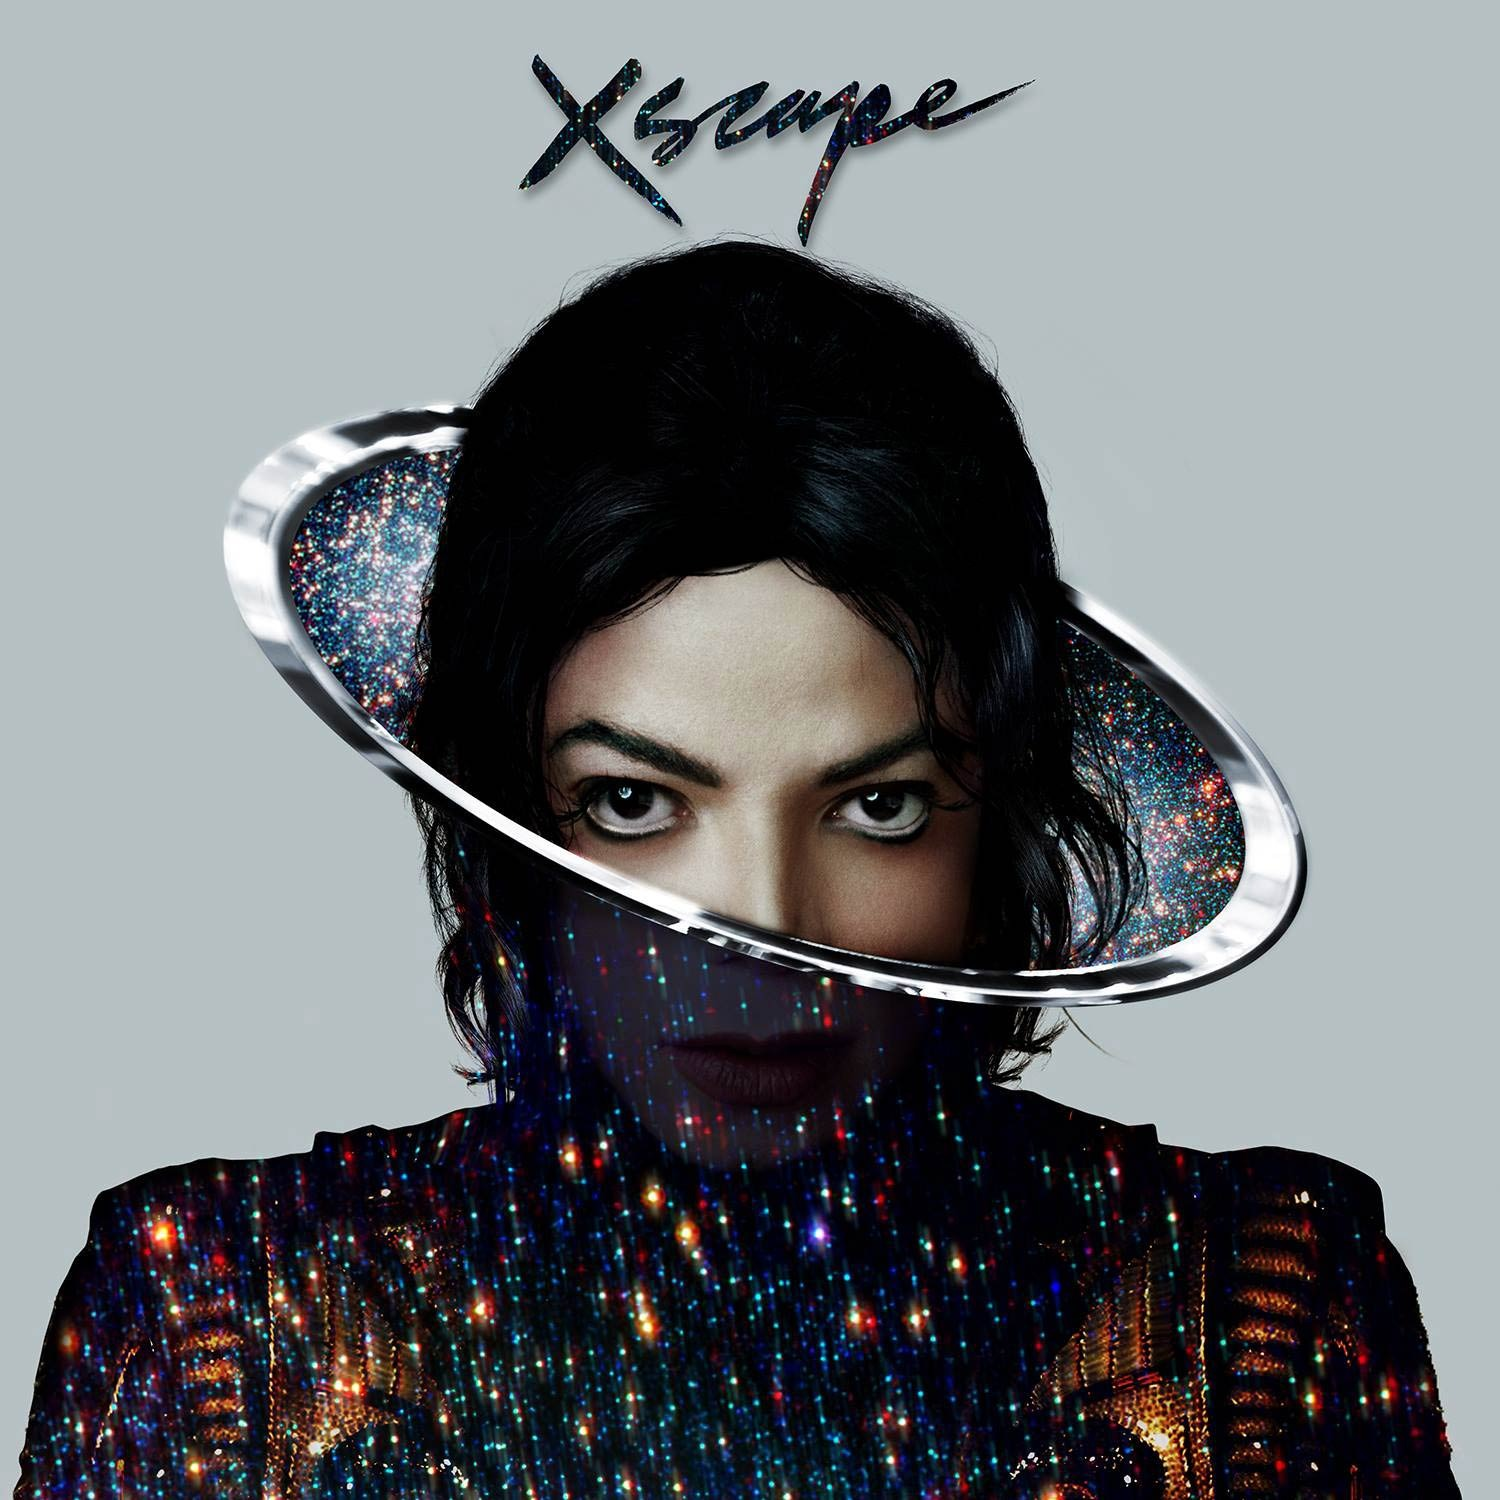 Michael Jackson - Xscape [Album]